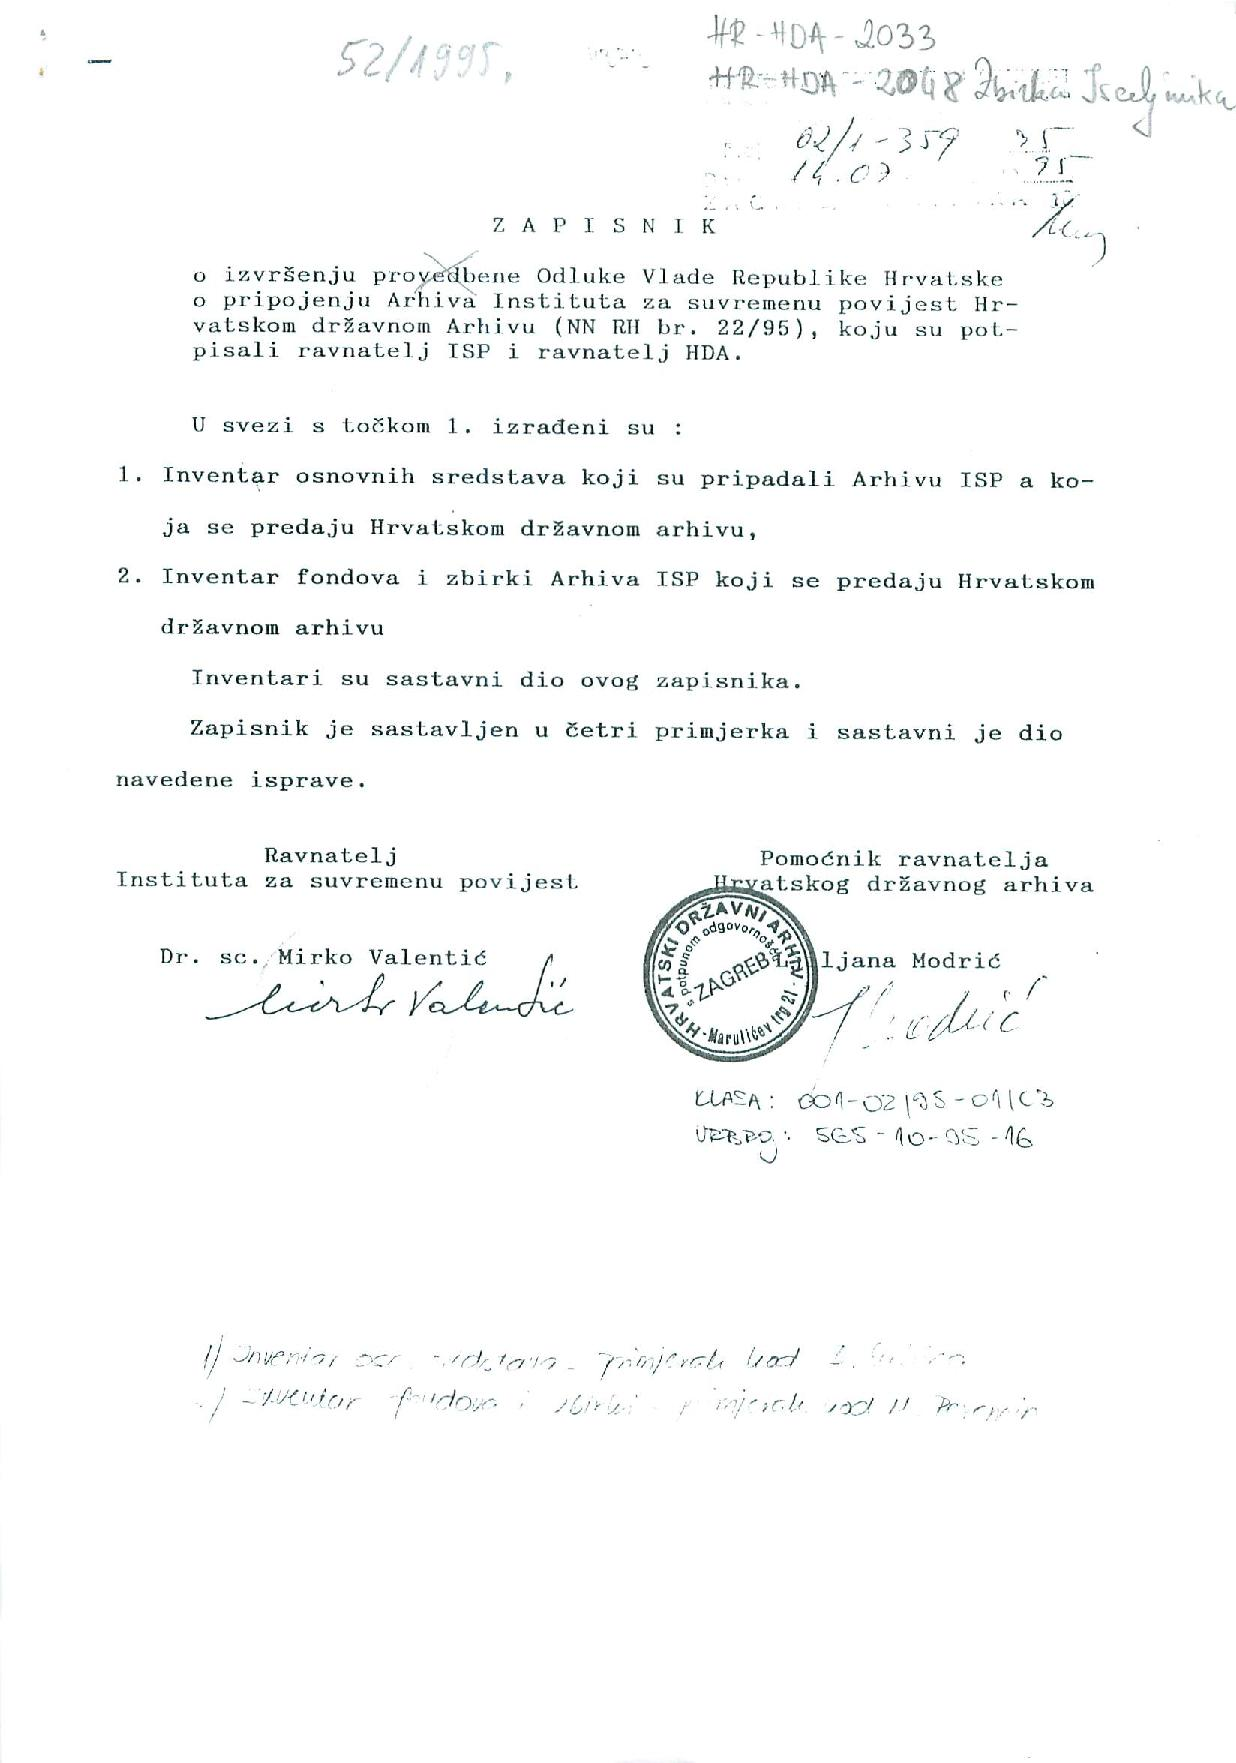 The Delivery log between the Institute of Contemporary History and the Croatian State Archives, 14 July 1995